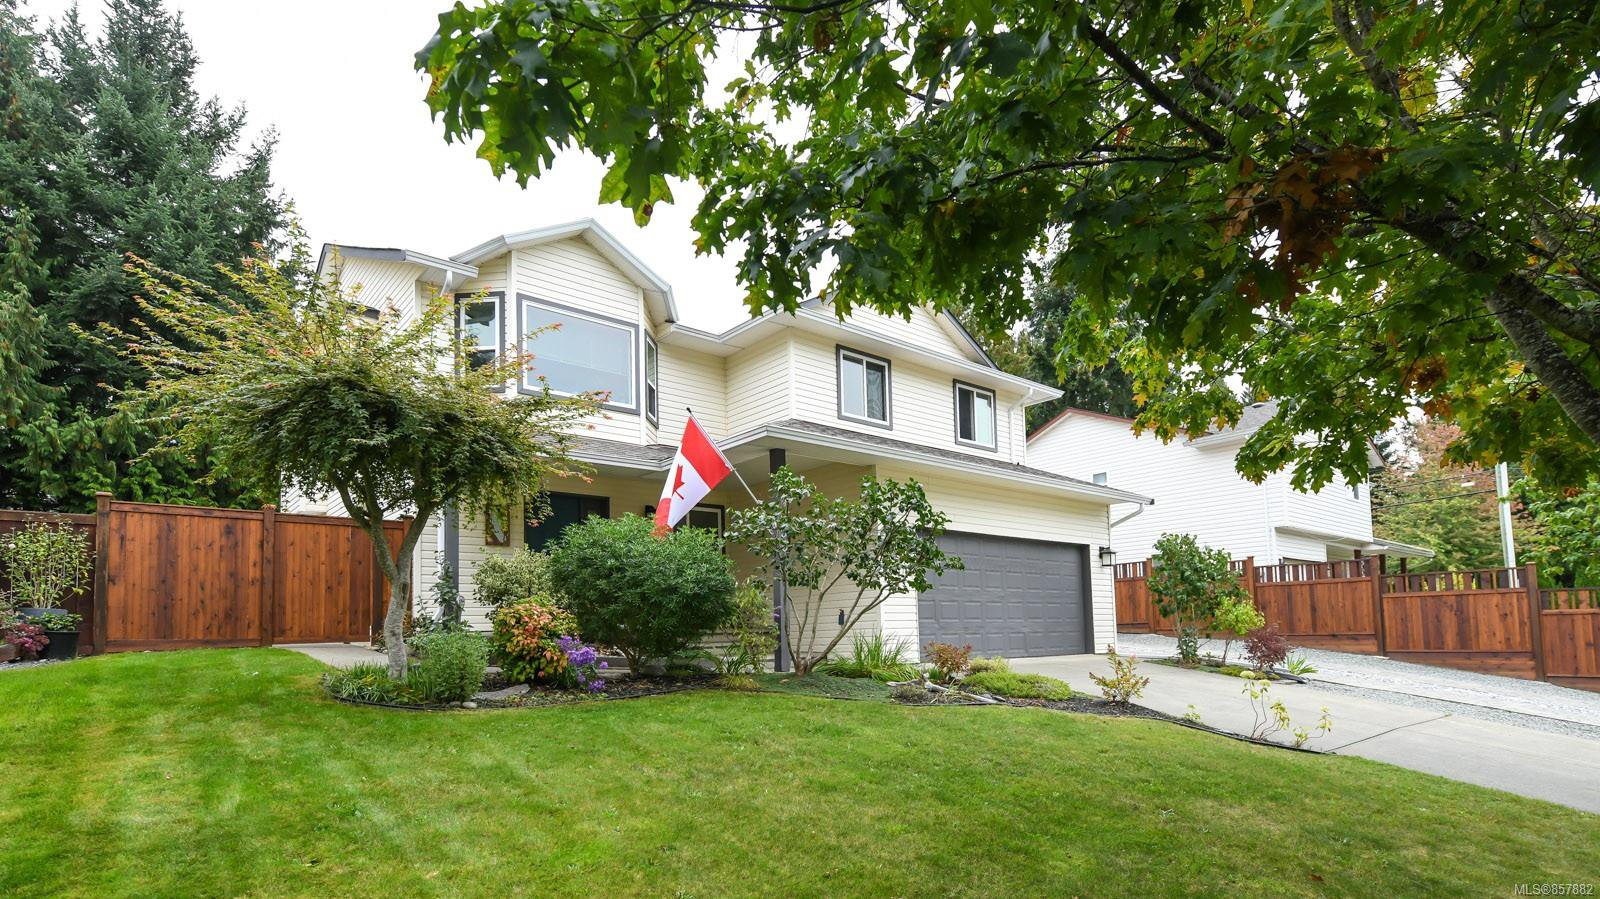 Main Photo: 2256 Walbran Dr in : CV Courtenay East House for sale (Comox Valley)  : MLS®# 857882